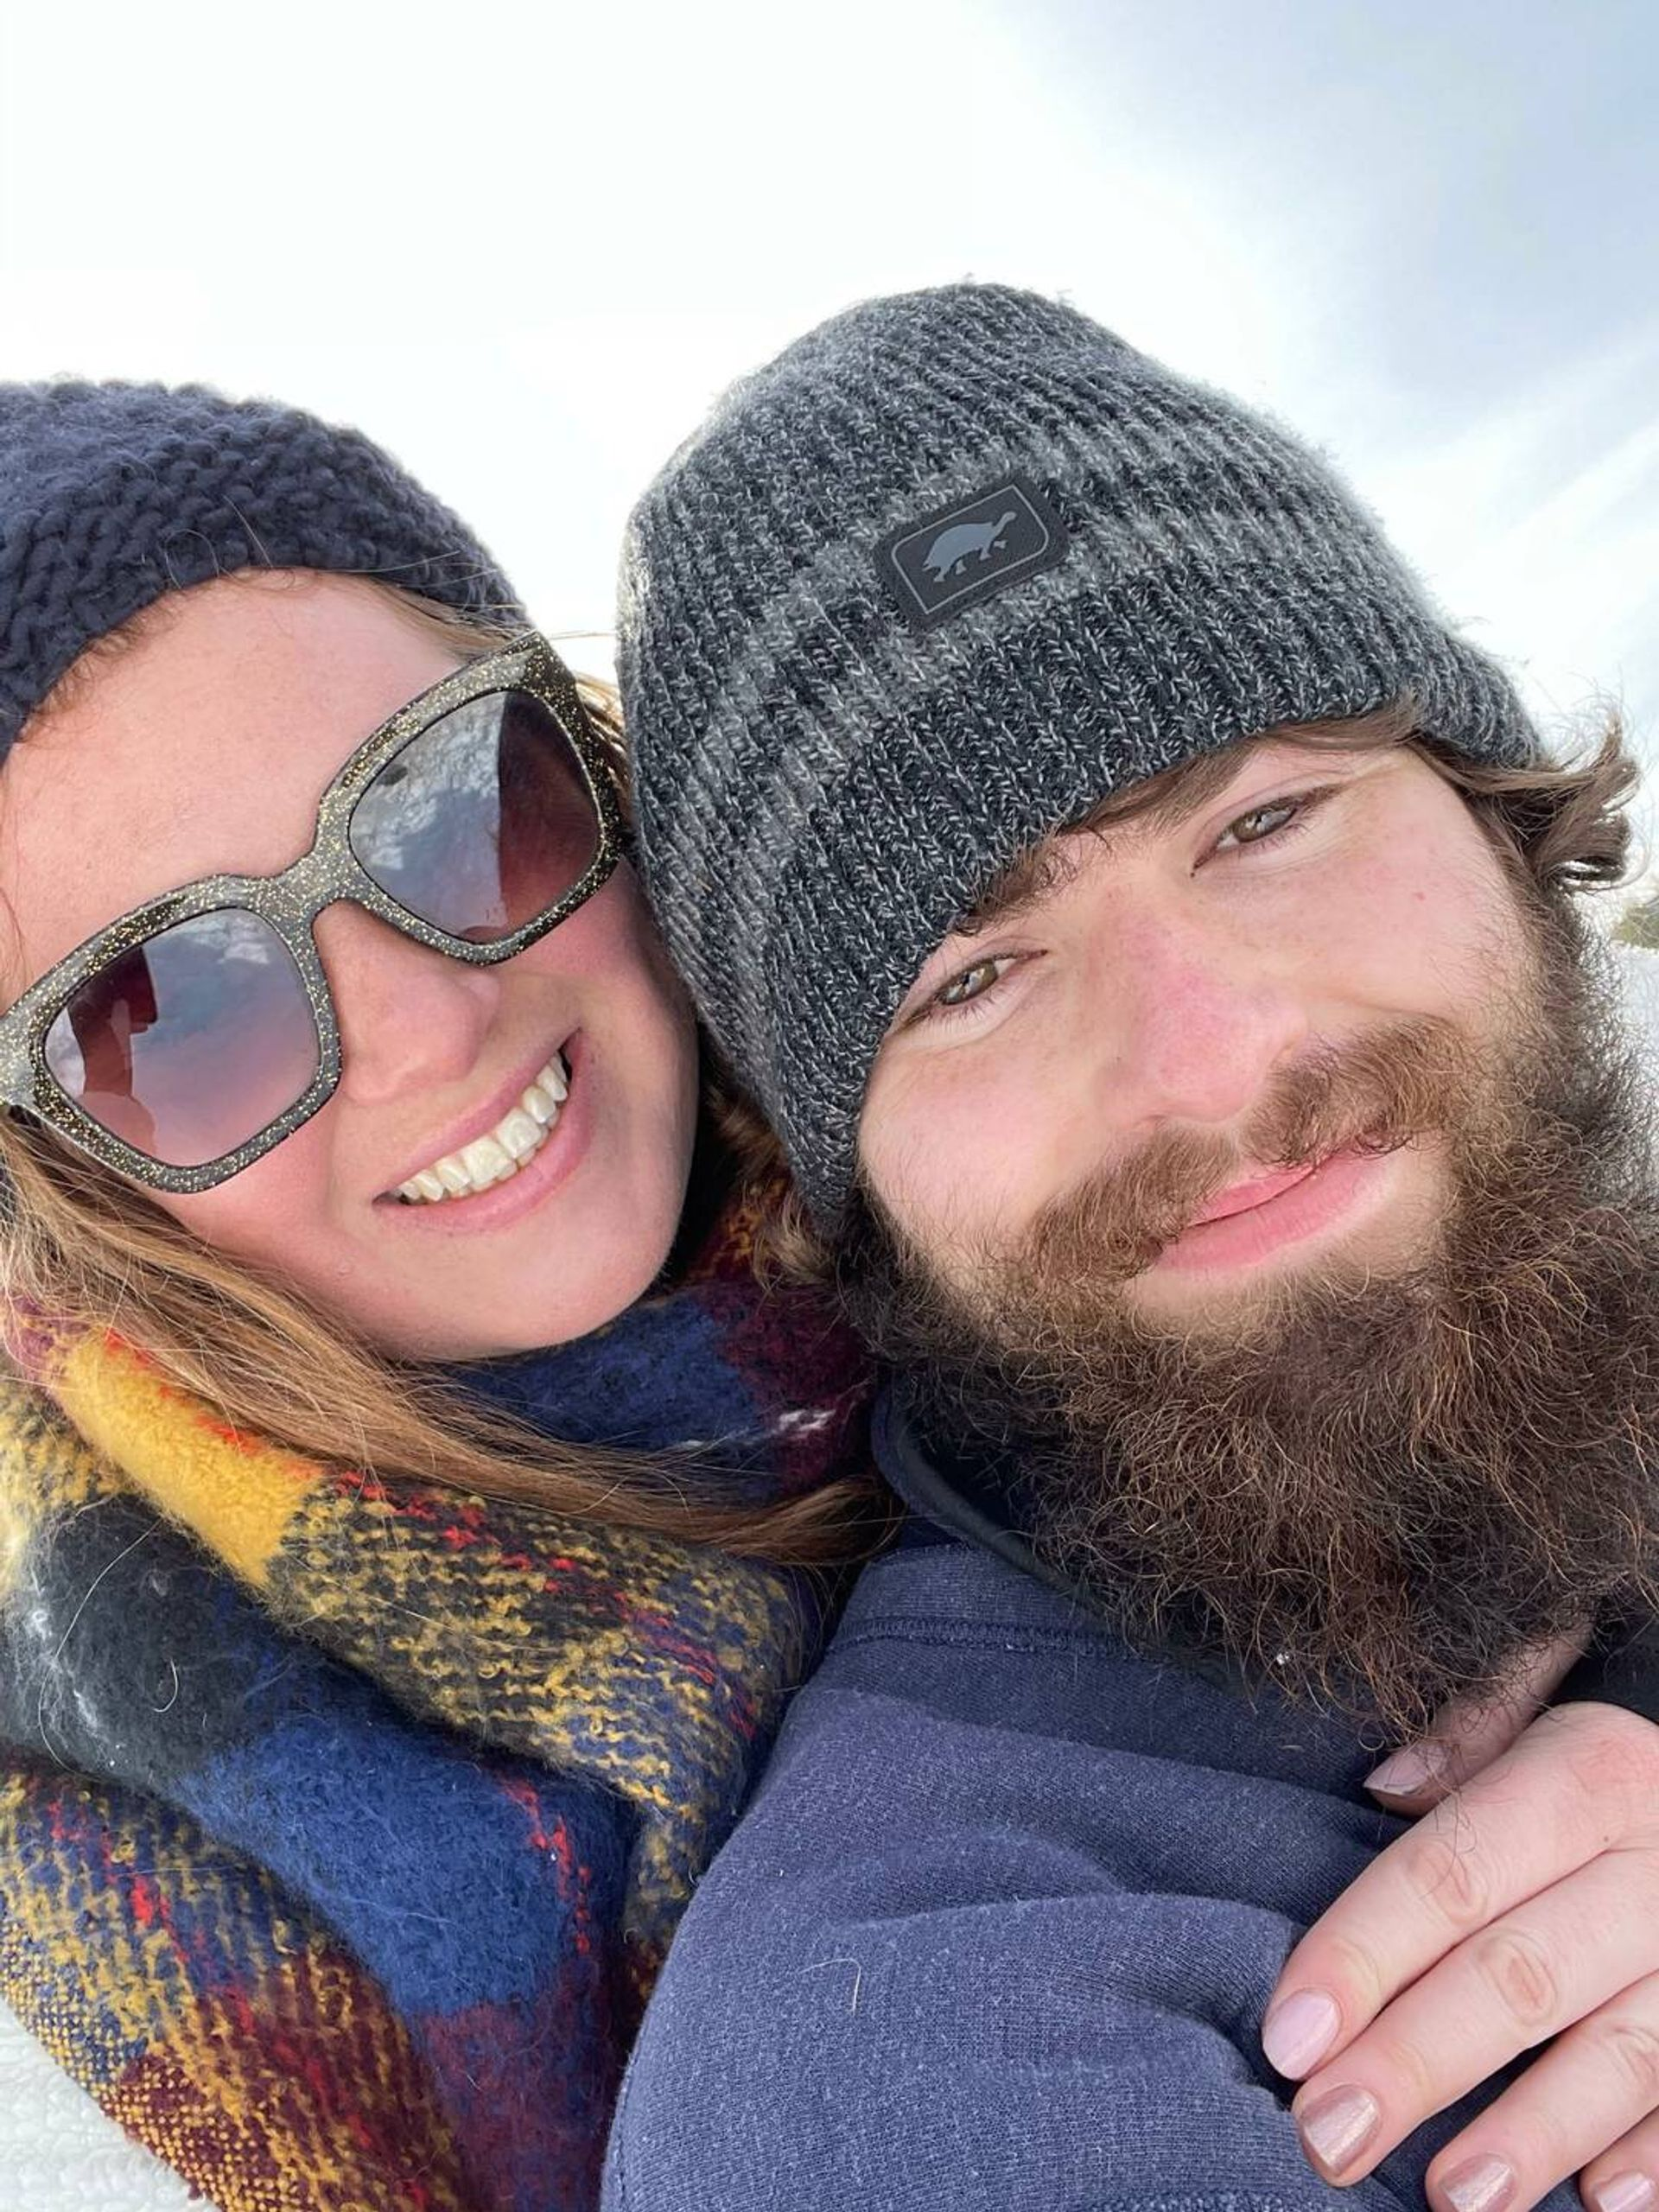 Photograph of a young couple in winter clothing who are looking at the camera and smiling. Age gap, love, Rewire, PBS